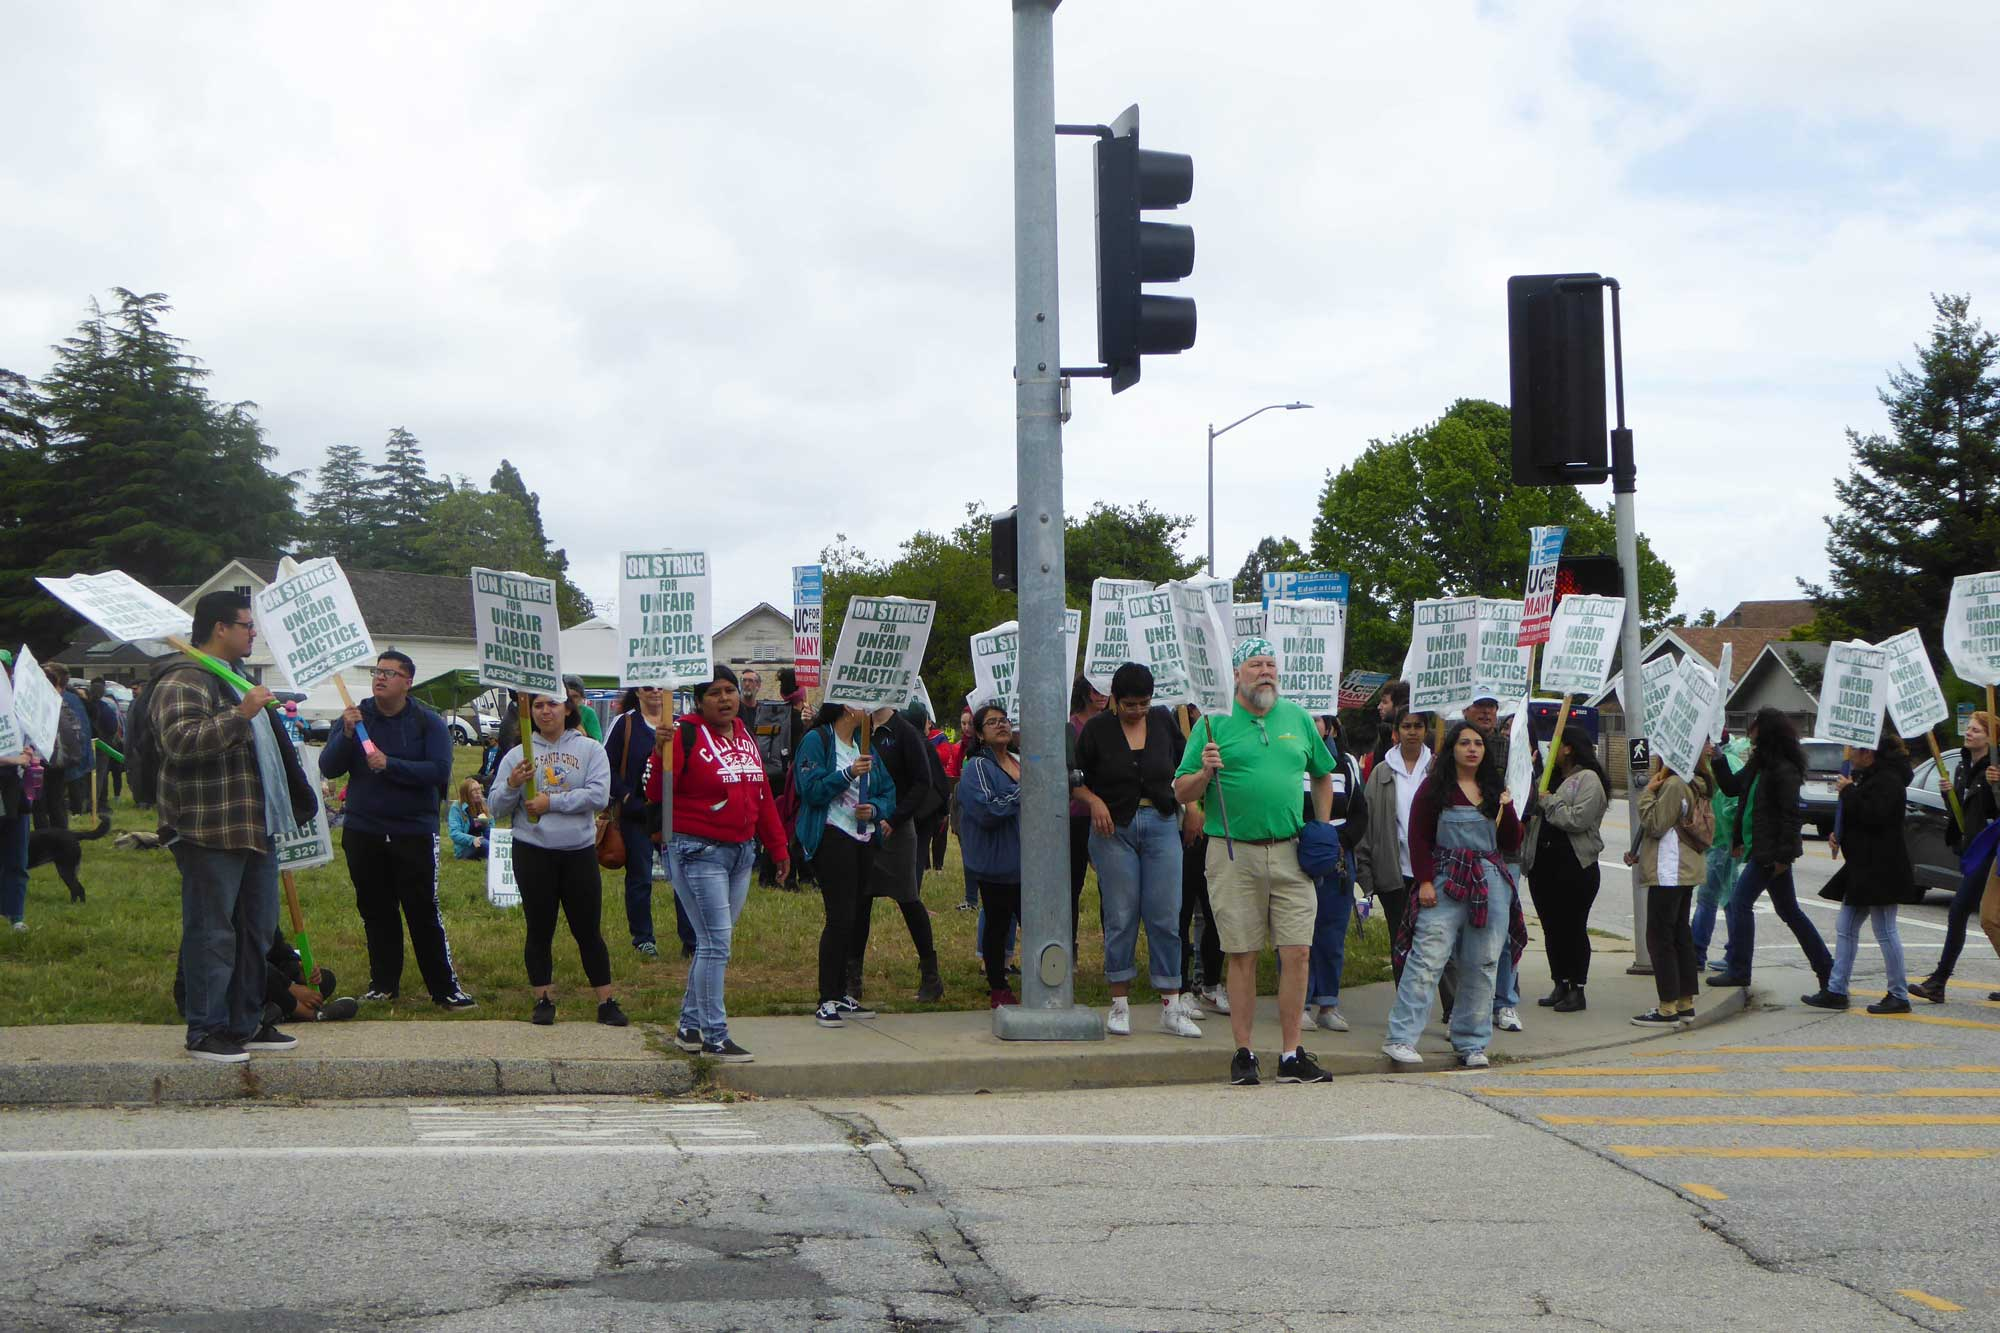 Picketing for Protections